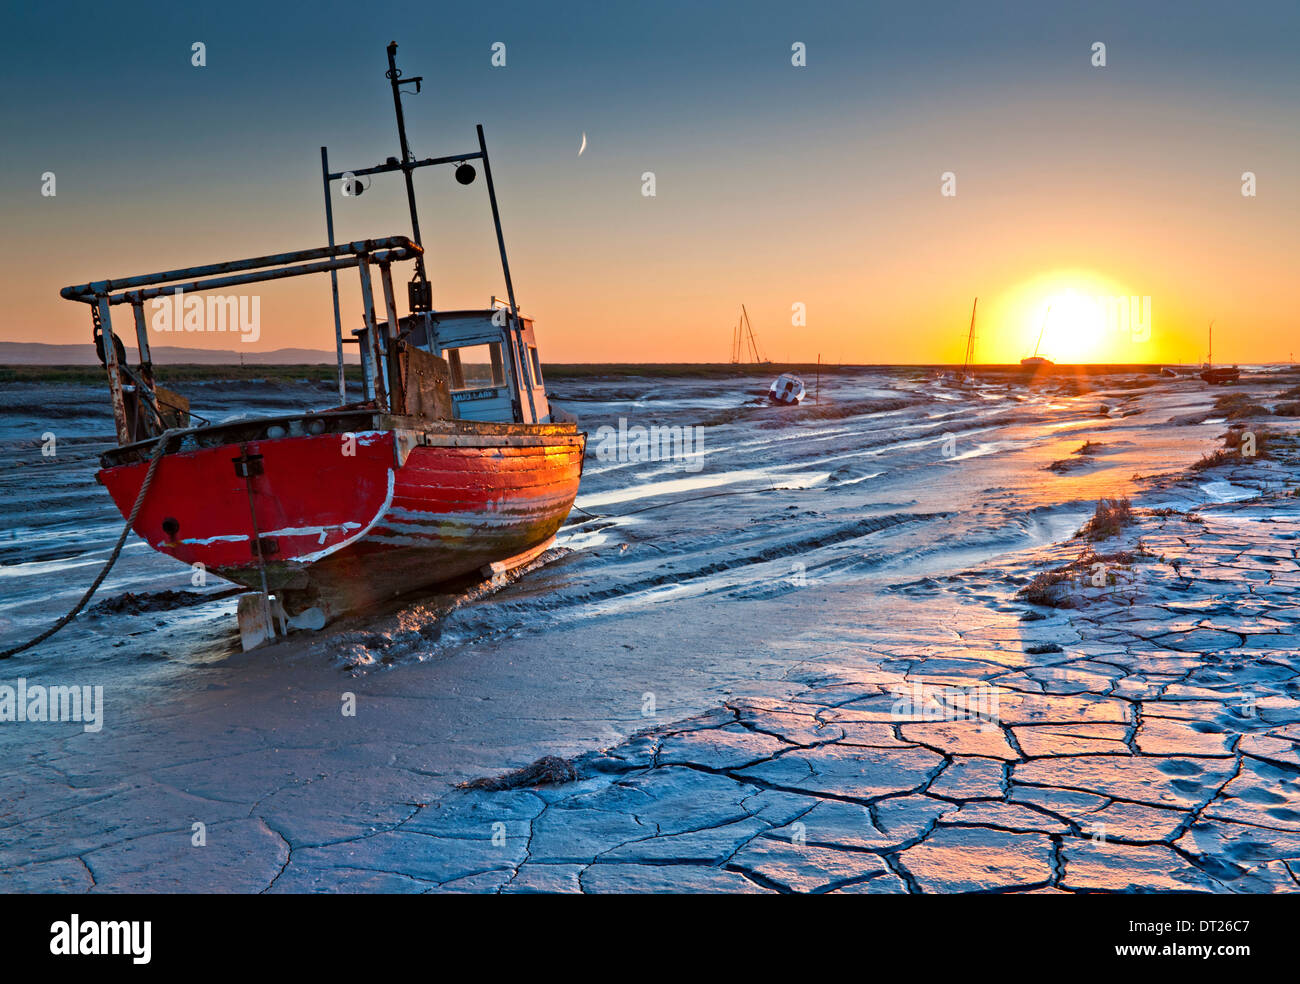 Mud Flats & Fishing Boats at Sunset, Heswall, The Dee Estuary, The Wirral, Merseyside, England, UK - Stock Image